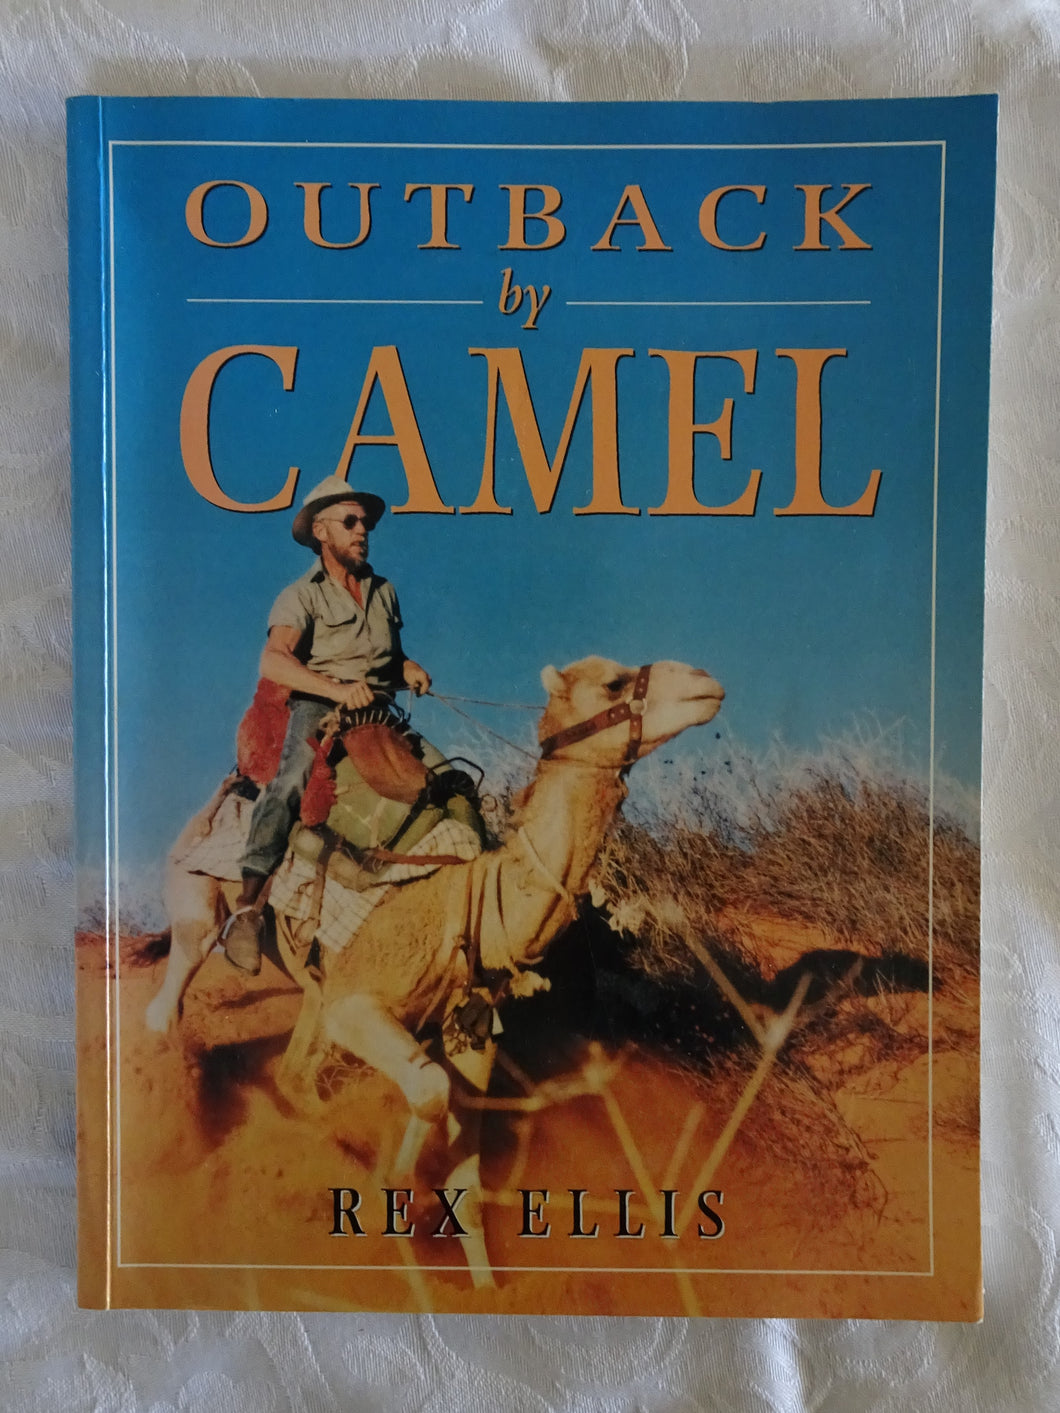 Outback by Camel by Rex Ellis